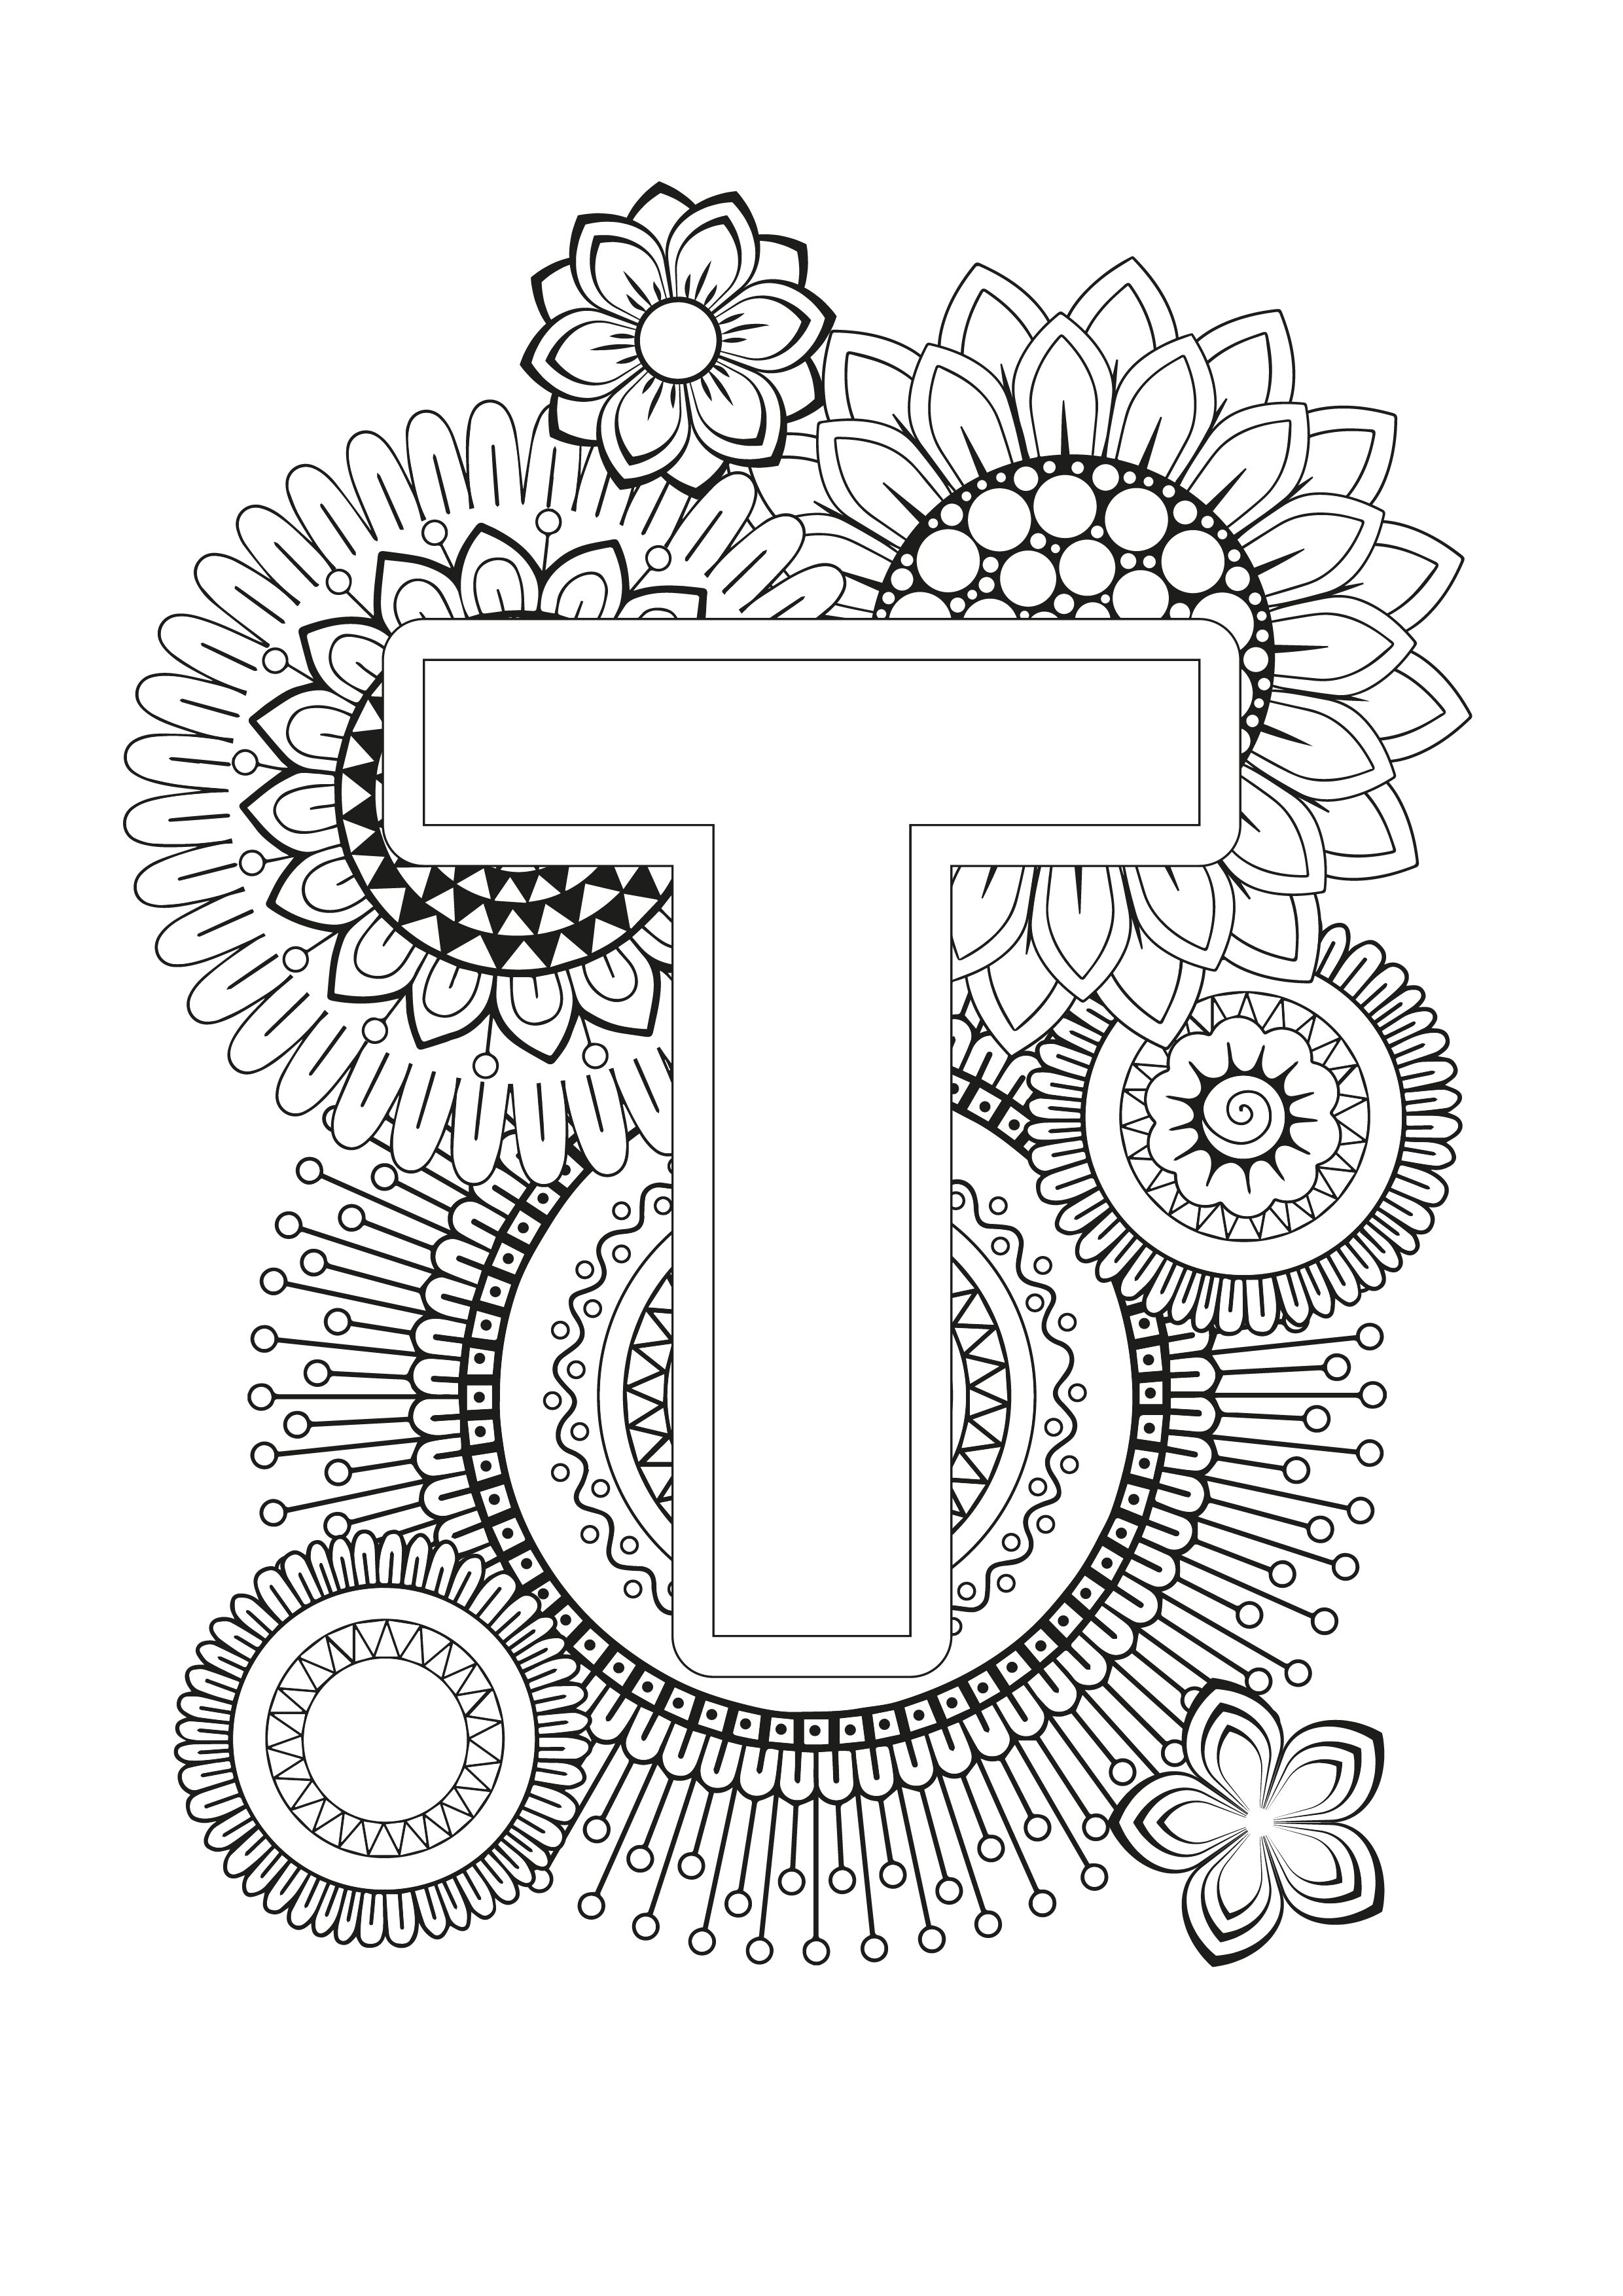 Mindfulness Coloring Page Alphabet Coloring Pages Animal Coloring Pages Coloring Books